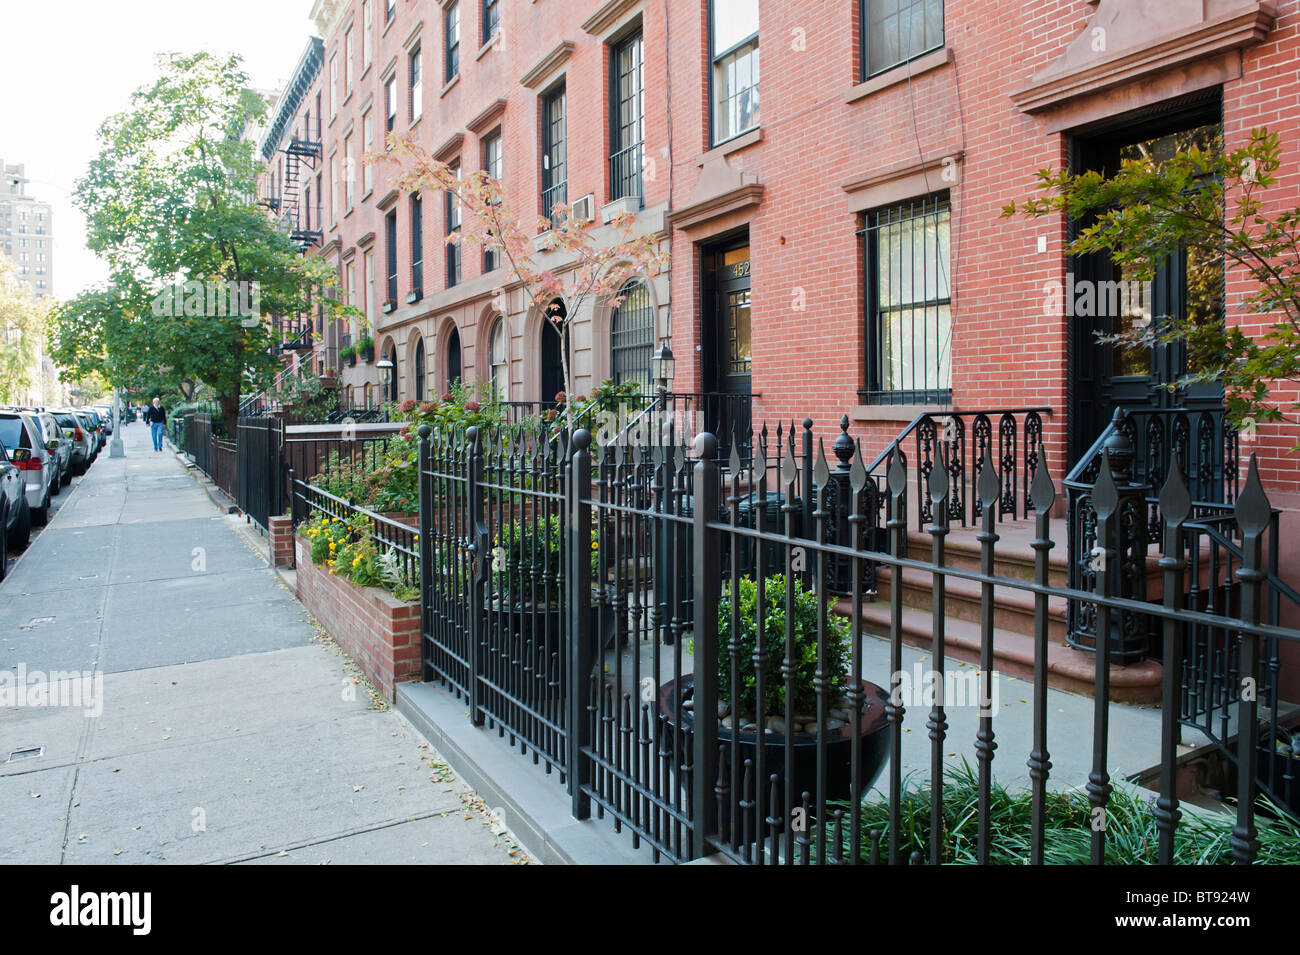 Tipica strada residenziale nel quartiere di Chelsea District di Manhattan a New York City Immagini Stock